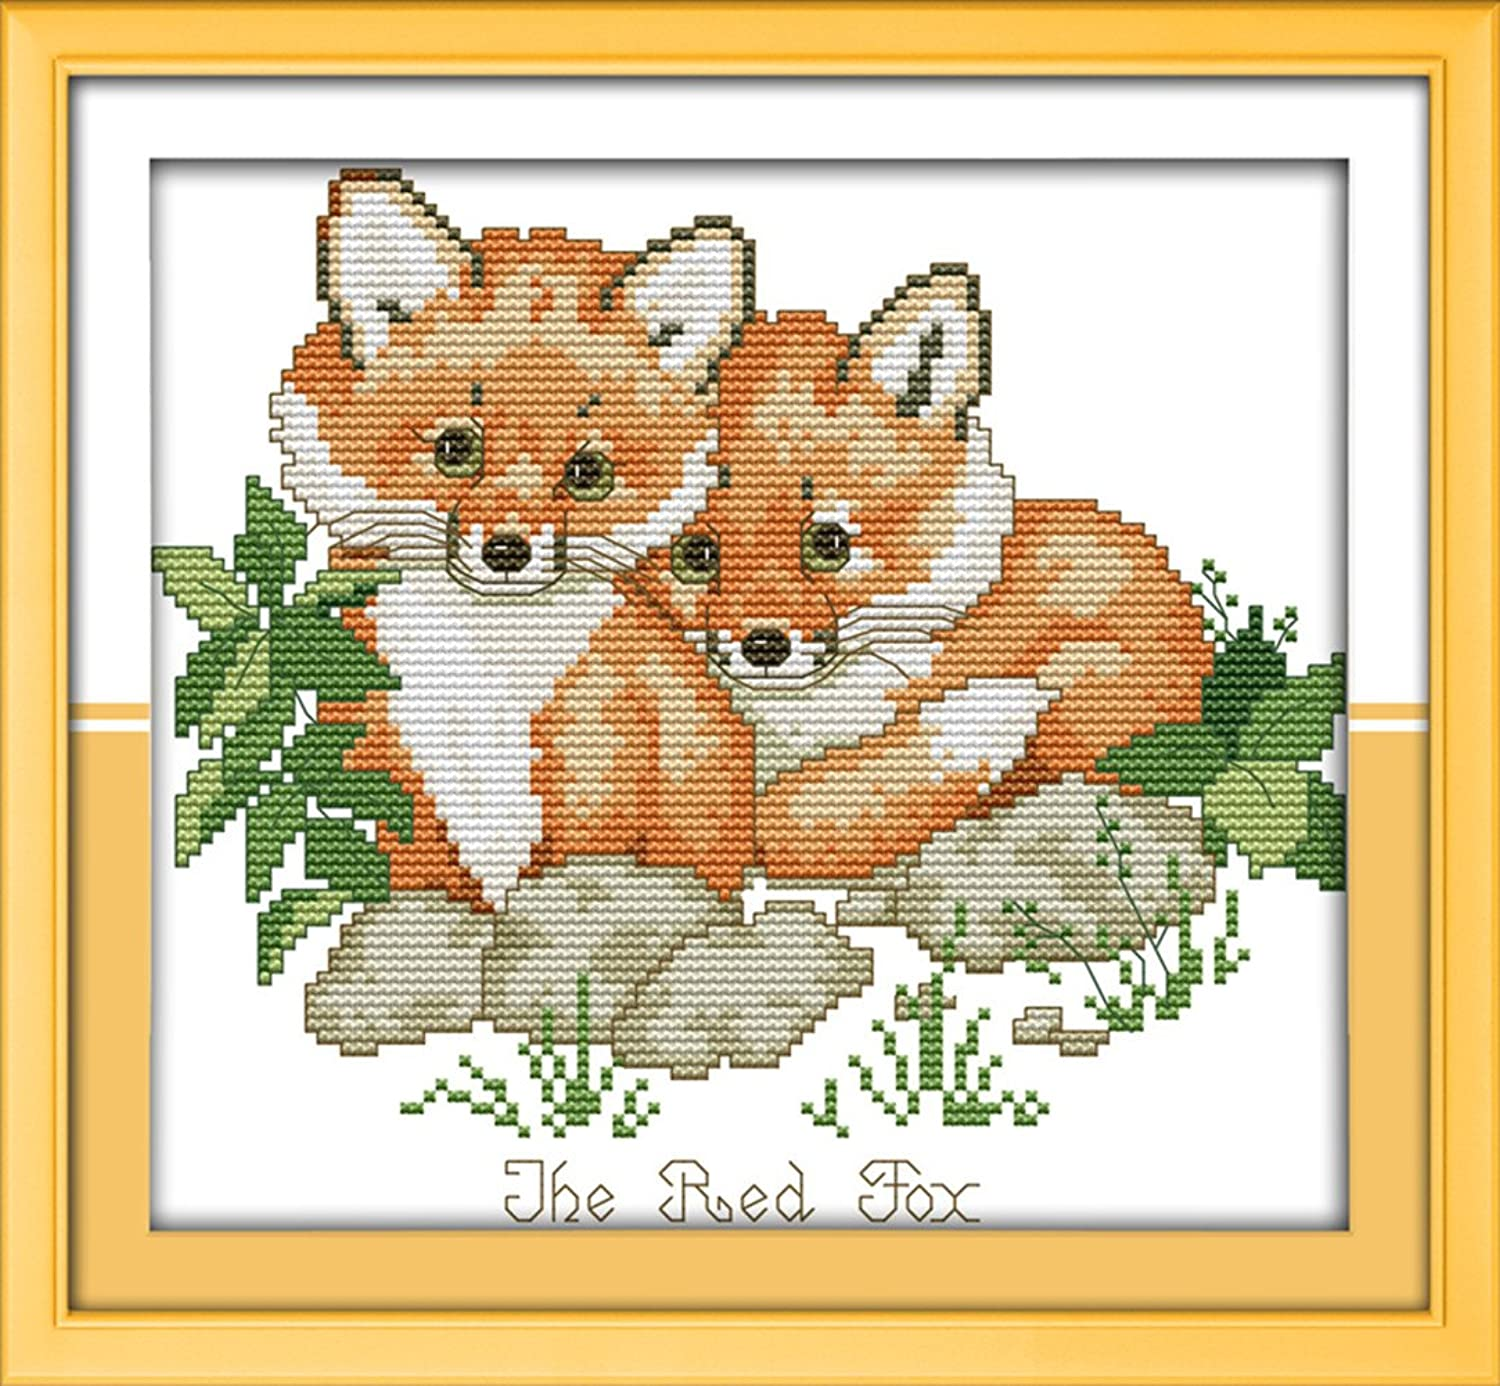 CaptainCrafts Hots Cross Stitch Kits Patterns Embroidery Kit - Red Foxes (STAMPED) zsgdmc6334515